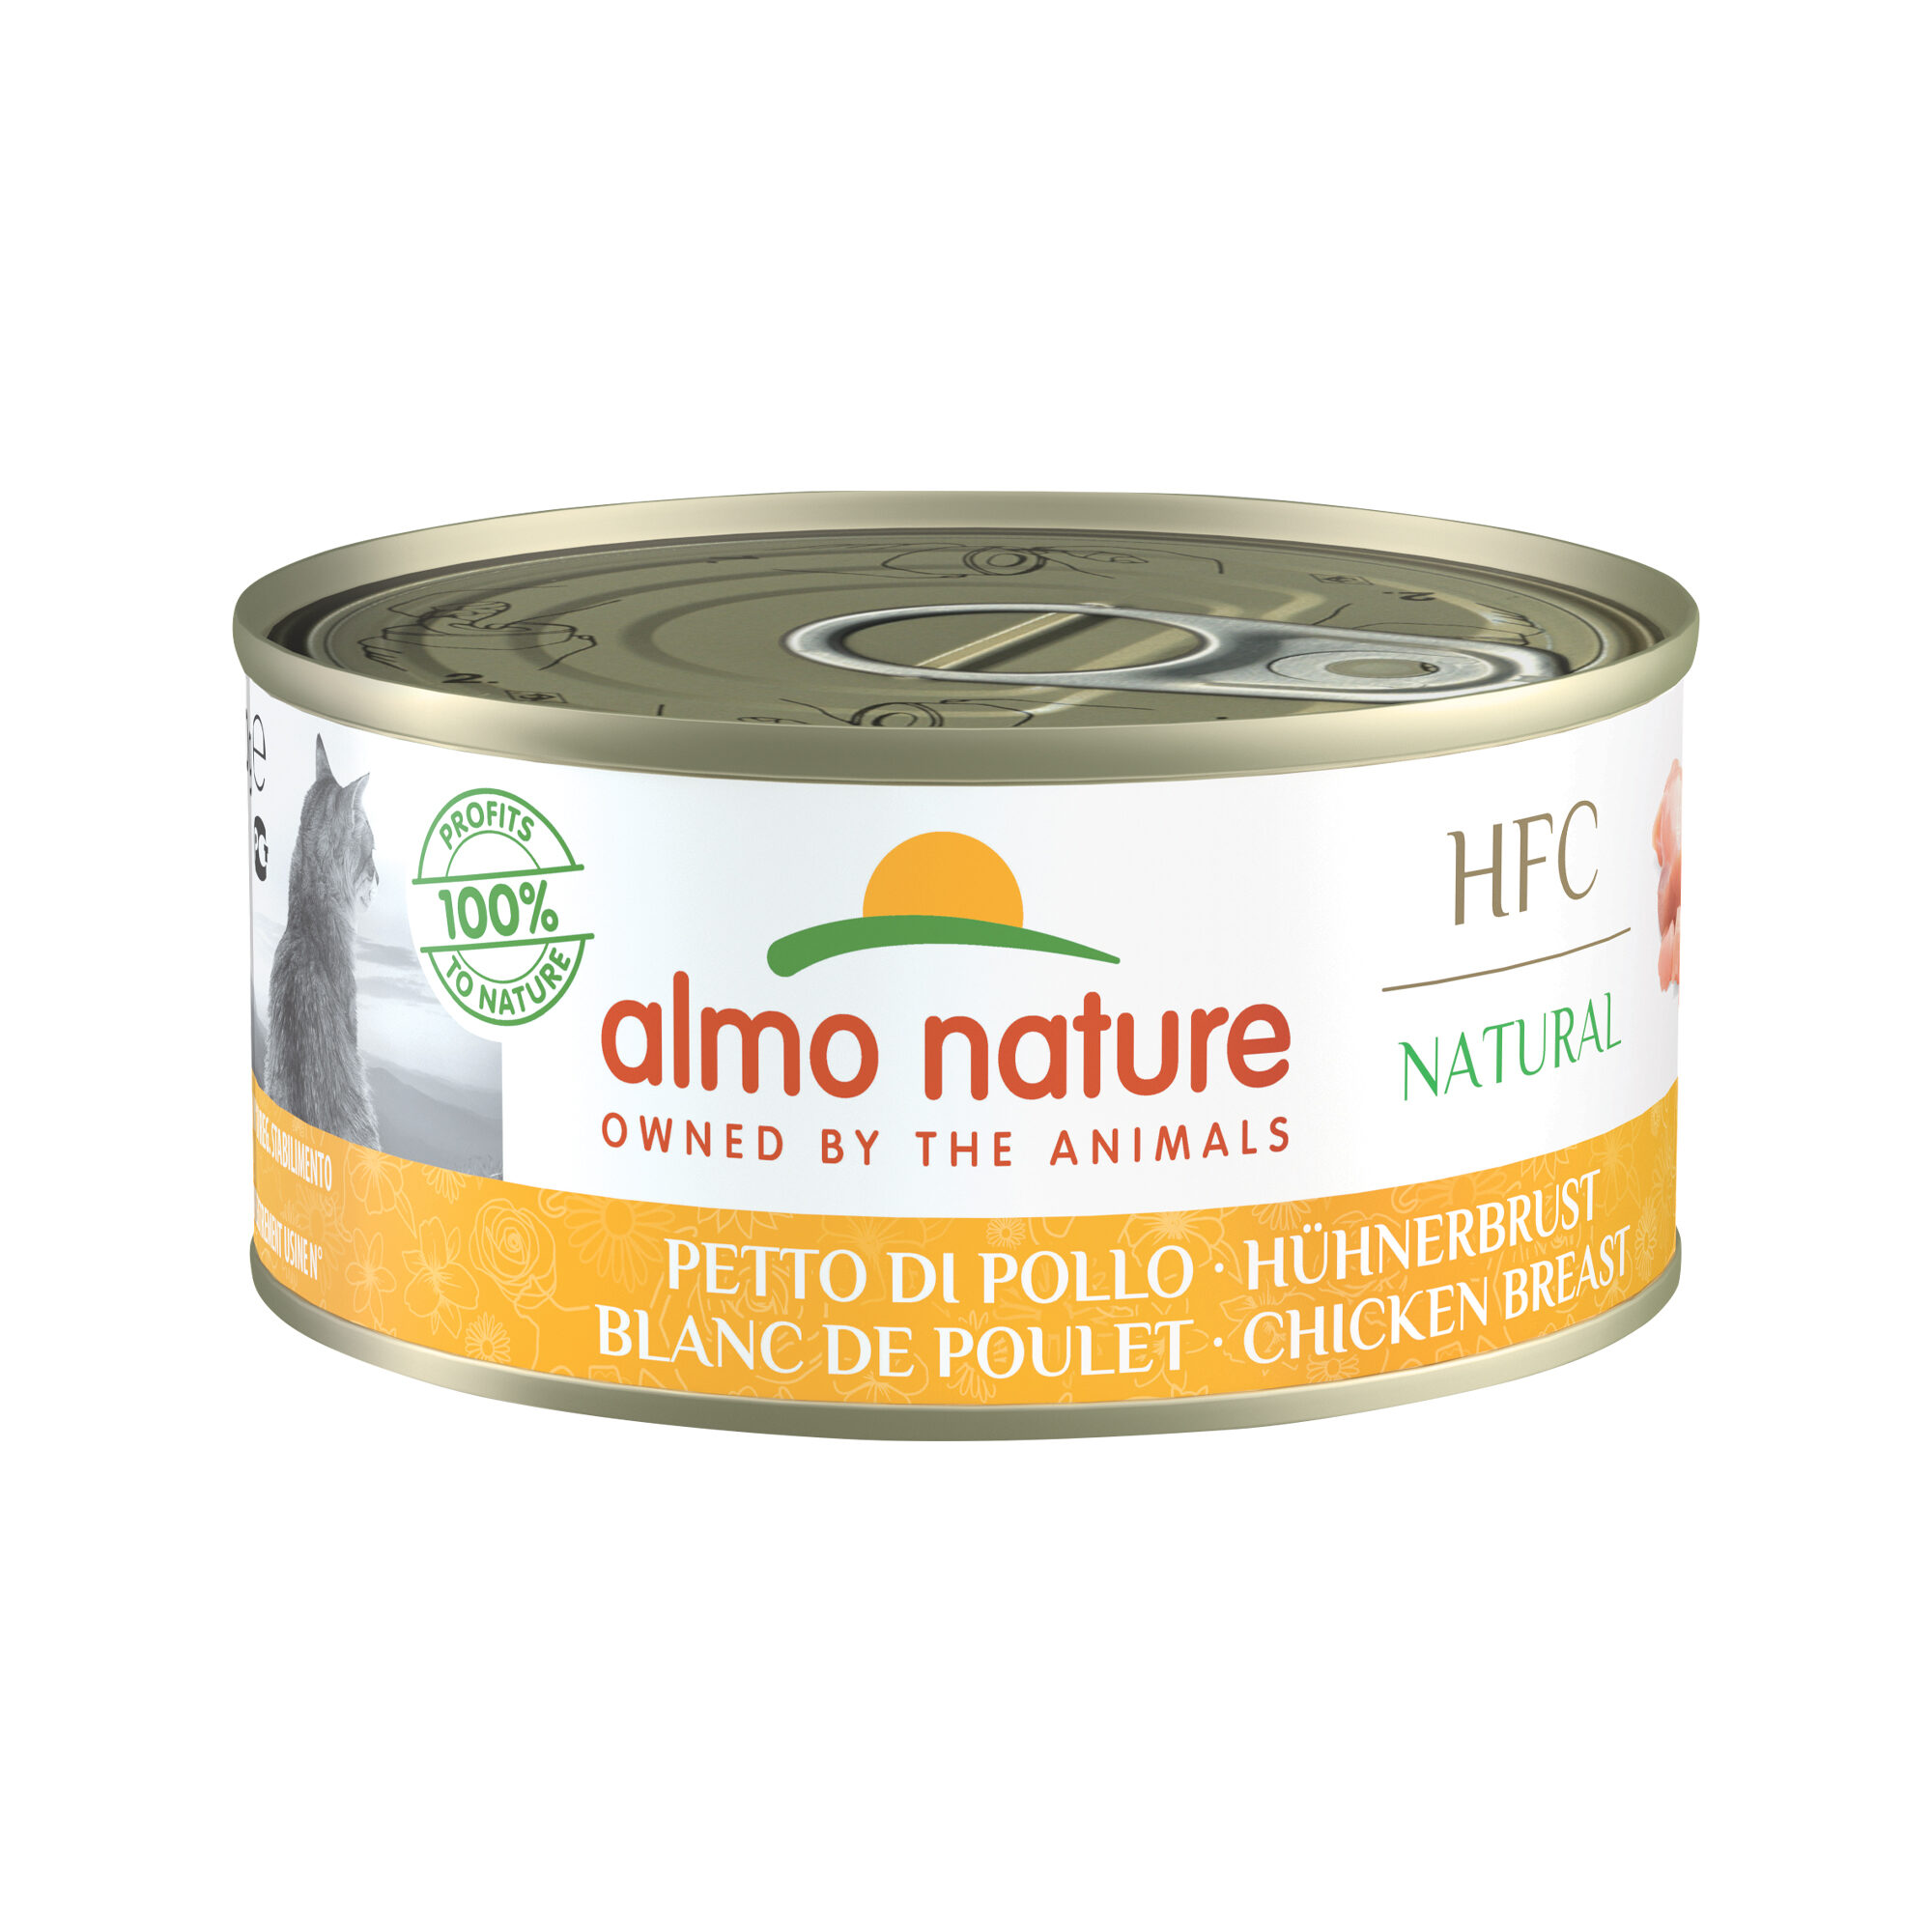 Almo Nature HFC Natural - Hühnerbrust - 24 x 150 g